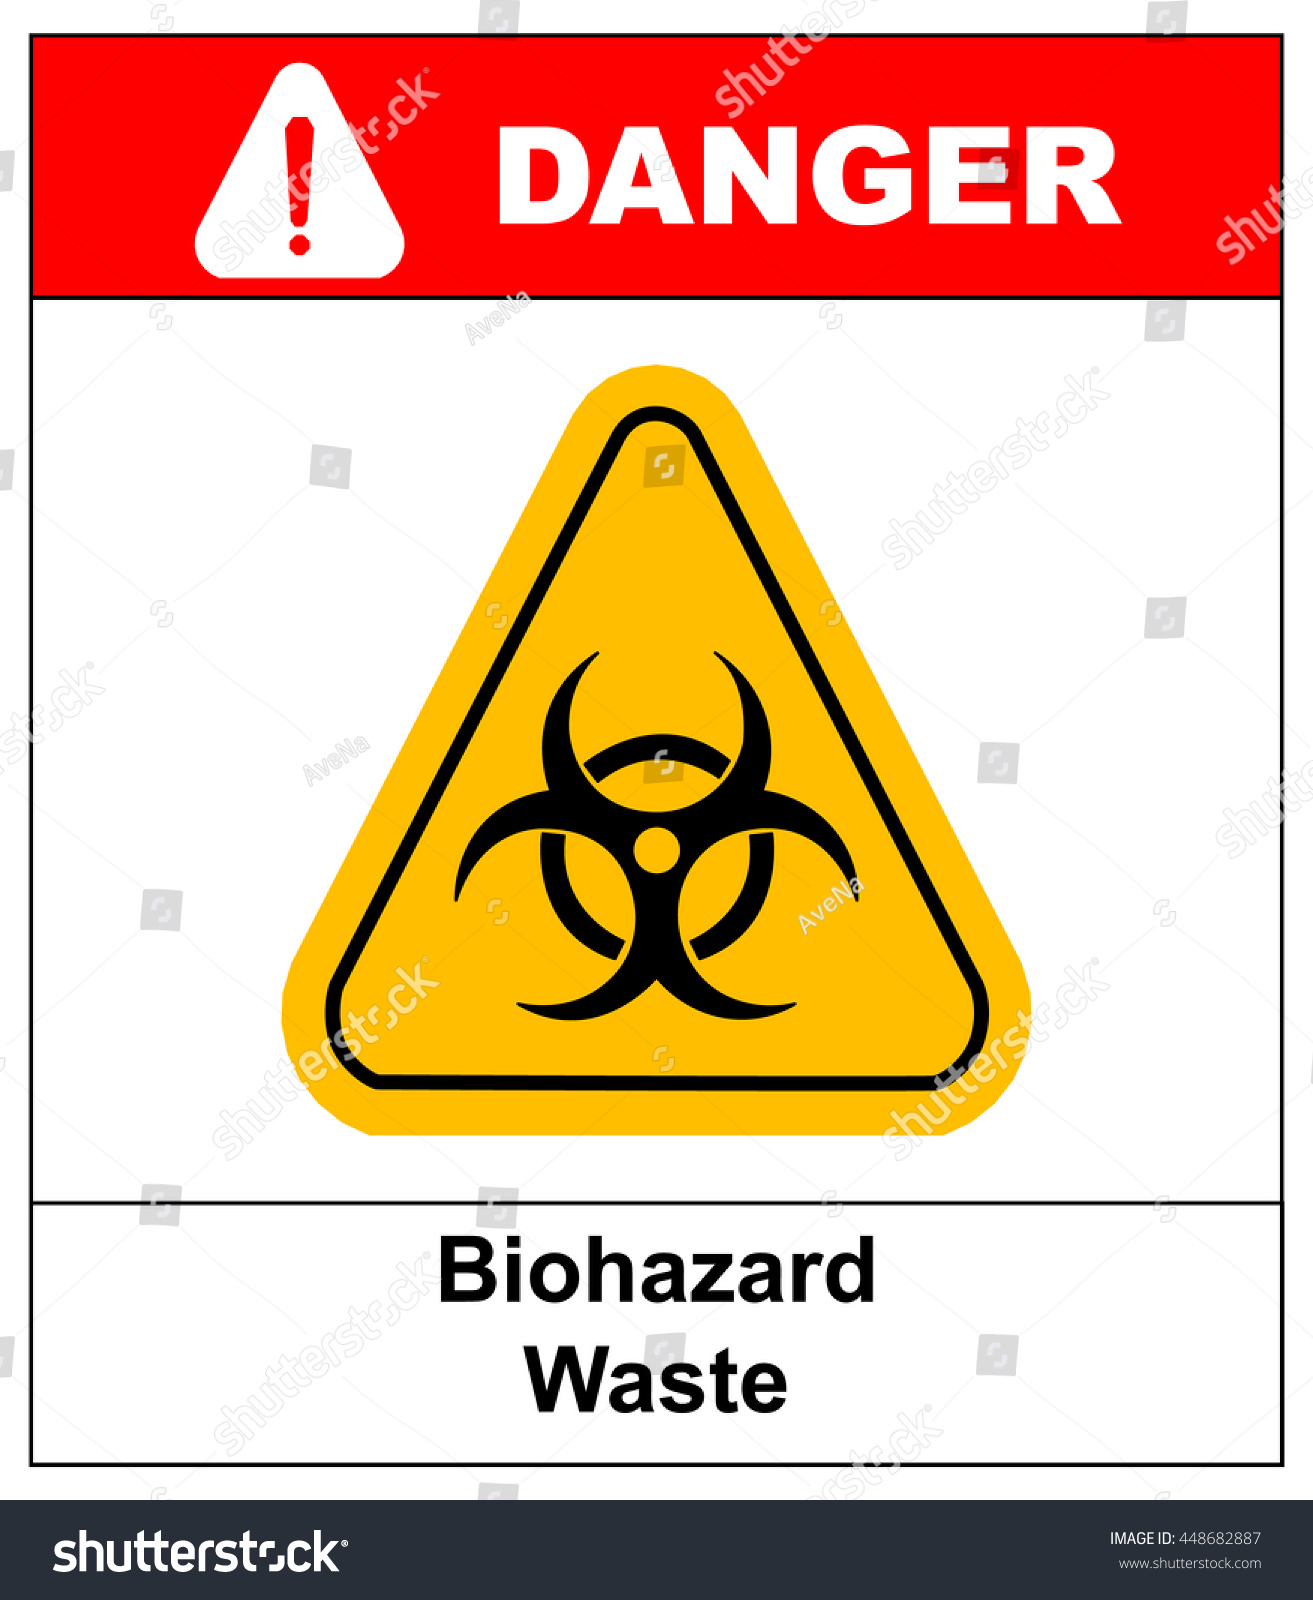 Biohazard symbol sign biological threat alert stock vector biohazard symbol sign of biological threat alert black yellow triangle signage text isolated biocorpaavc Choice Image